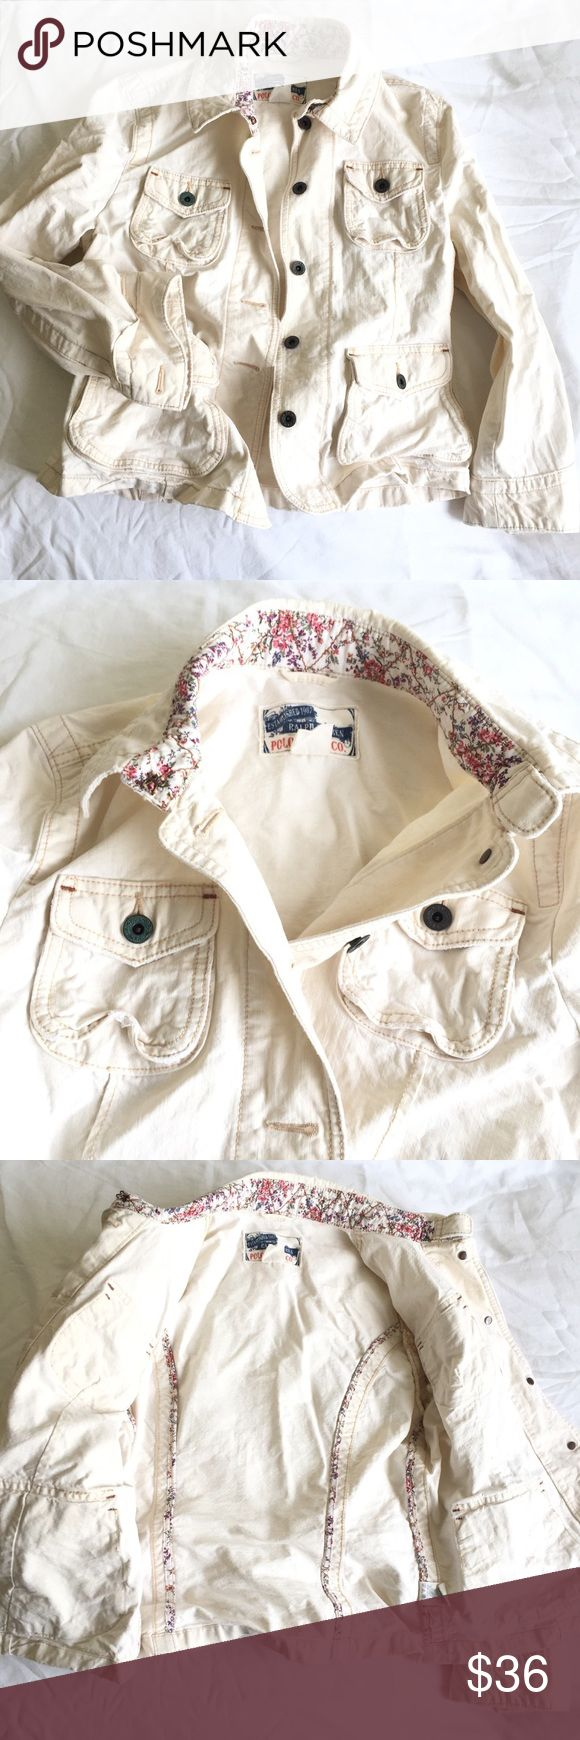 💥SALE Polo Jeans Crinkled Cream Jean Jacket M Lightly used Polo Jeans distressed crinkled cream color jean jacket. This jacket has crinkled distressed look with original light rips and holes by design. Very cute stitching designs. Cute with jeans or skirts. Beautiful cream color. Check measurements on picture. Comes from pet & smoke free home. Polo Jeans Jackets & Coats Jean Jackets